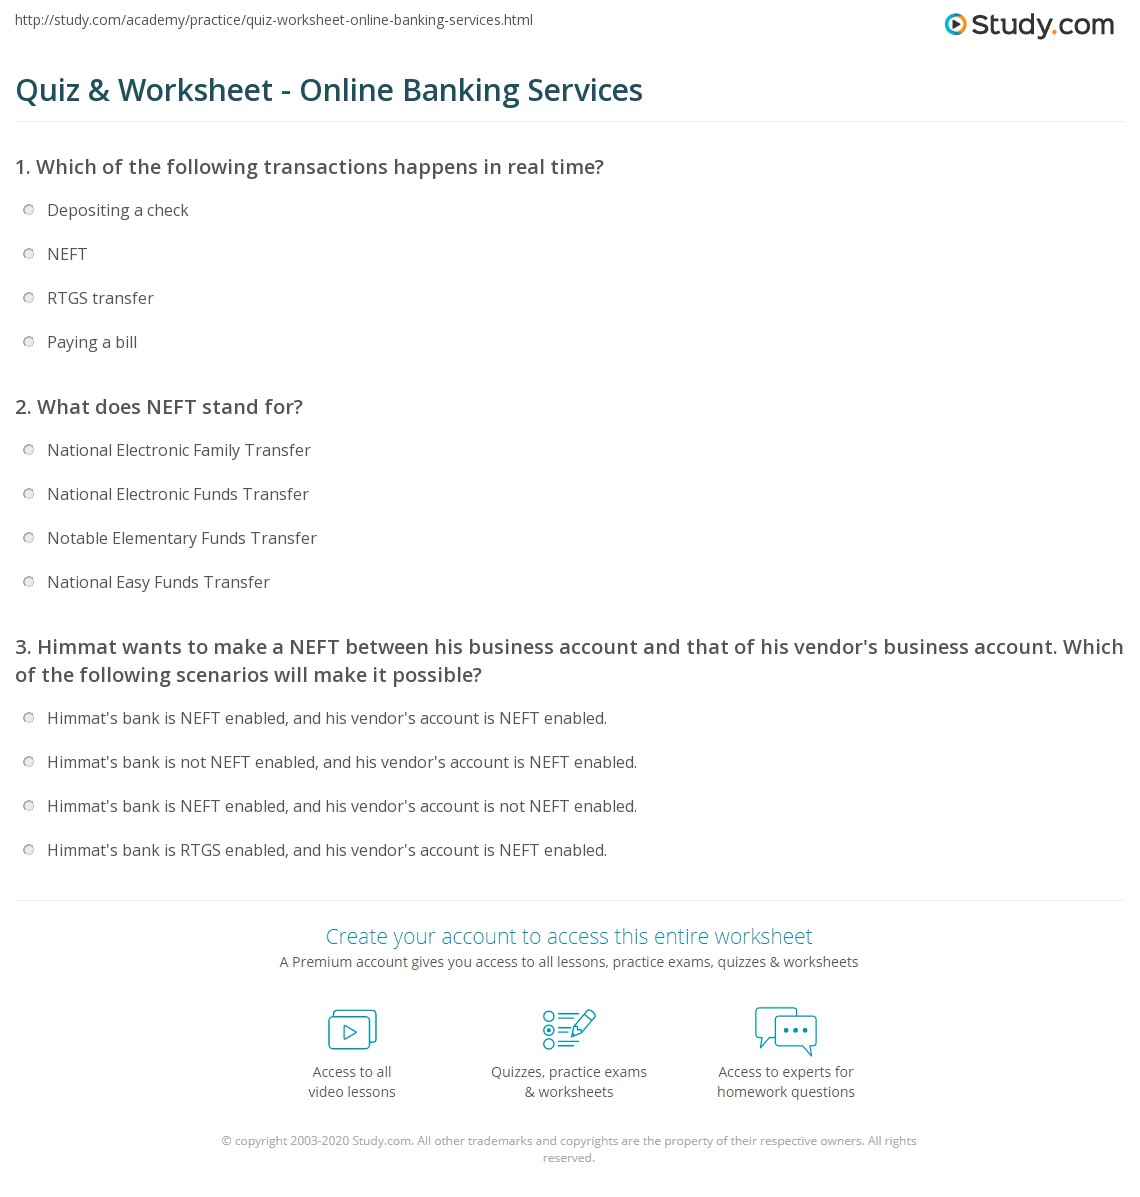 quiz & worksheet - online banking services | study